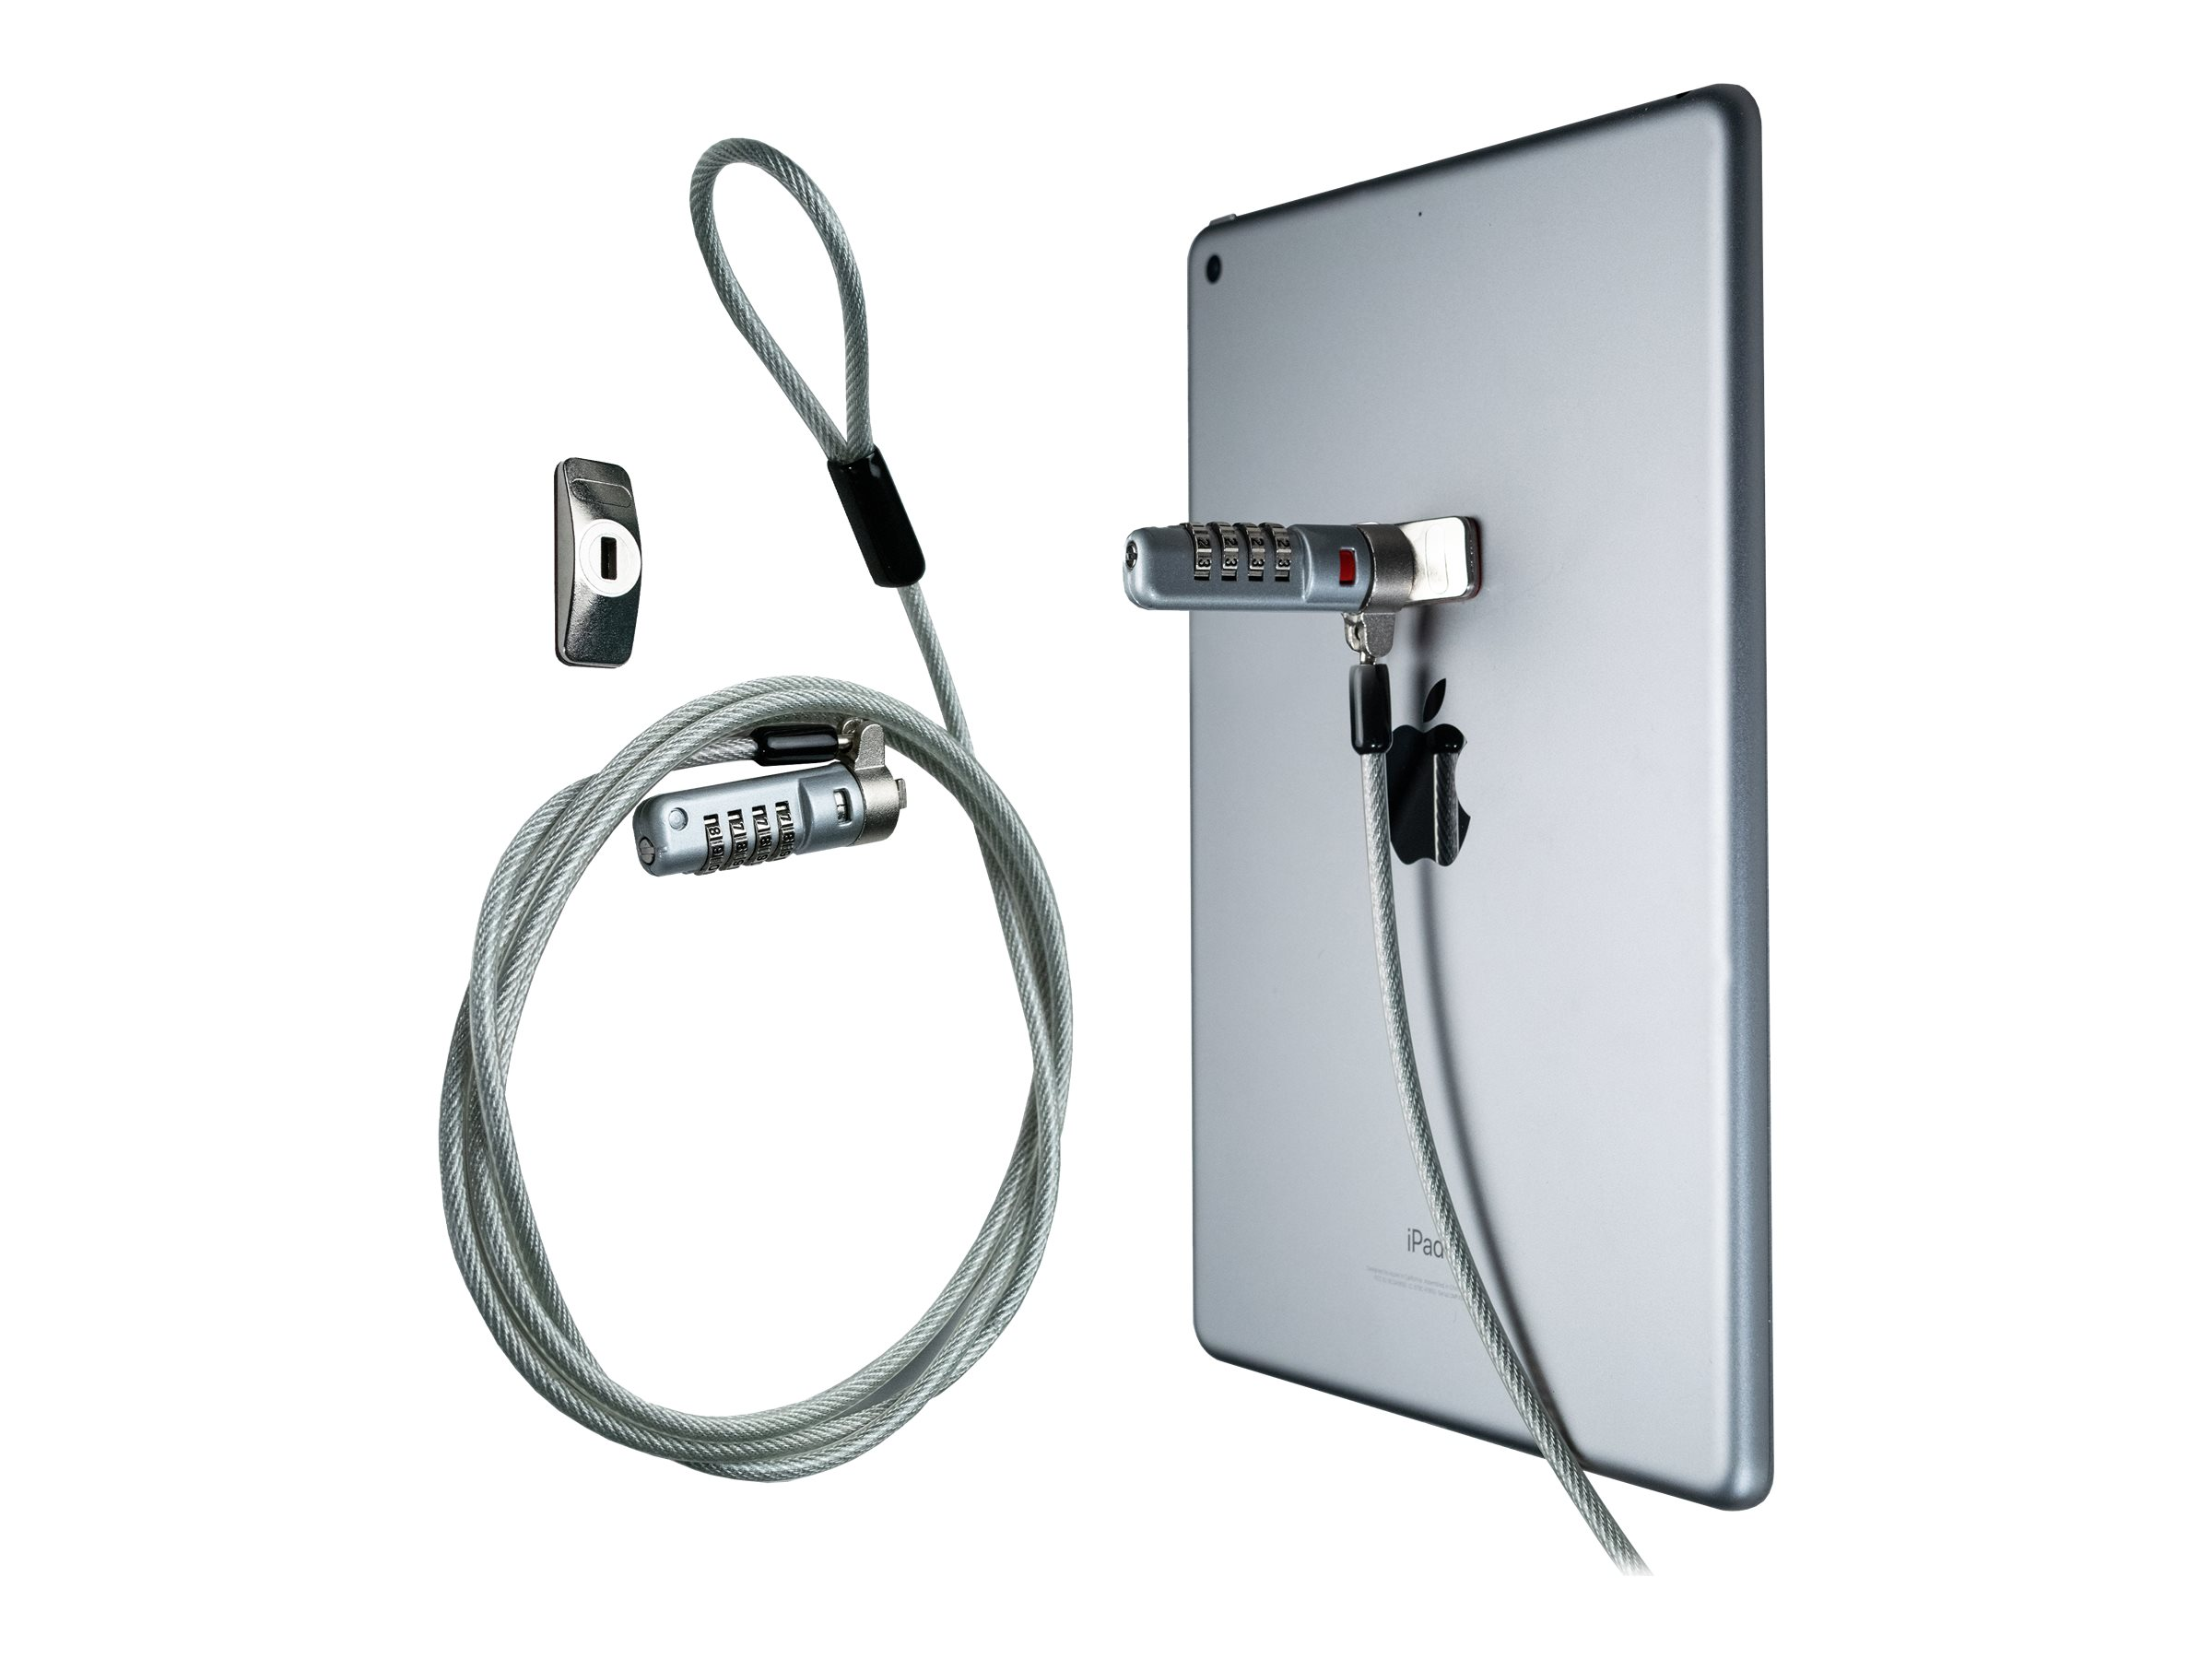 CTA Digital Kensington Combination Lock Security Cable and Adhesive Plate security cable lock